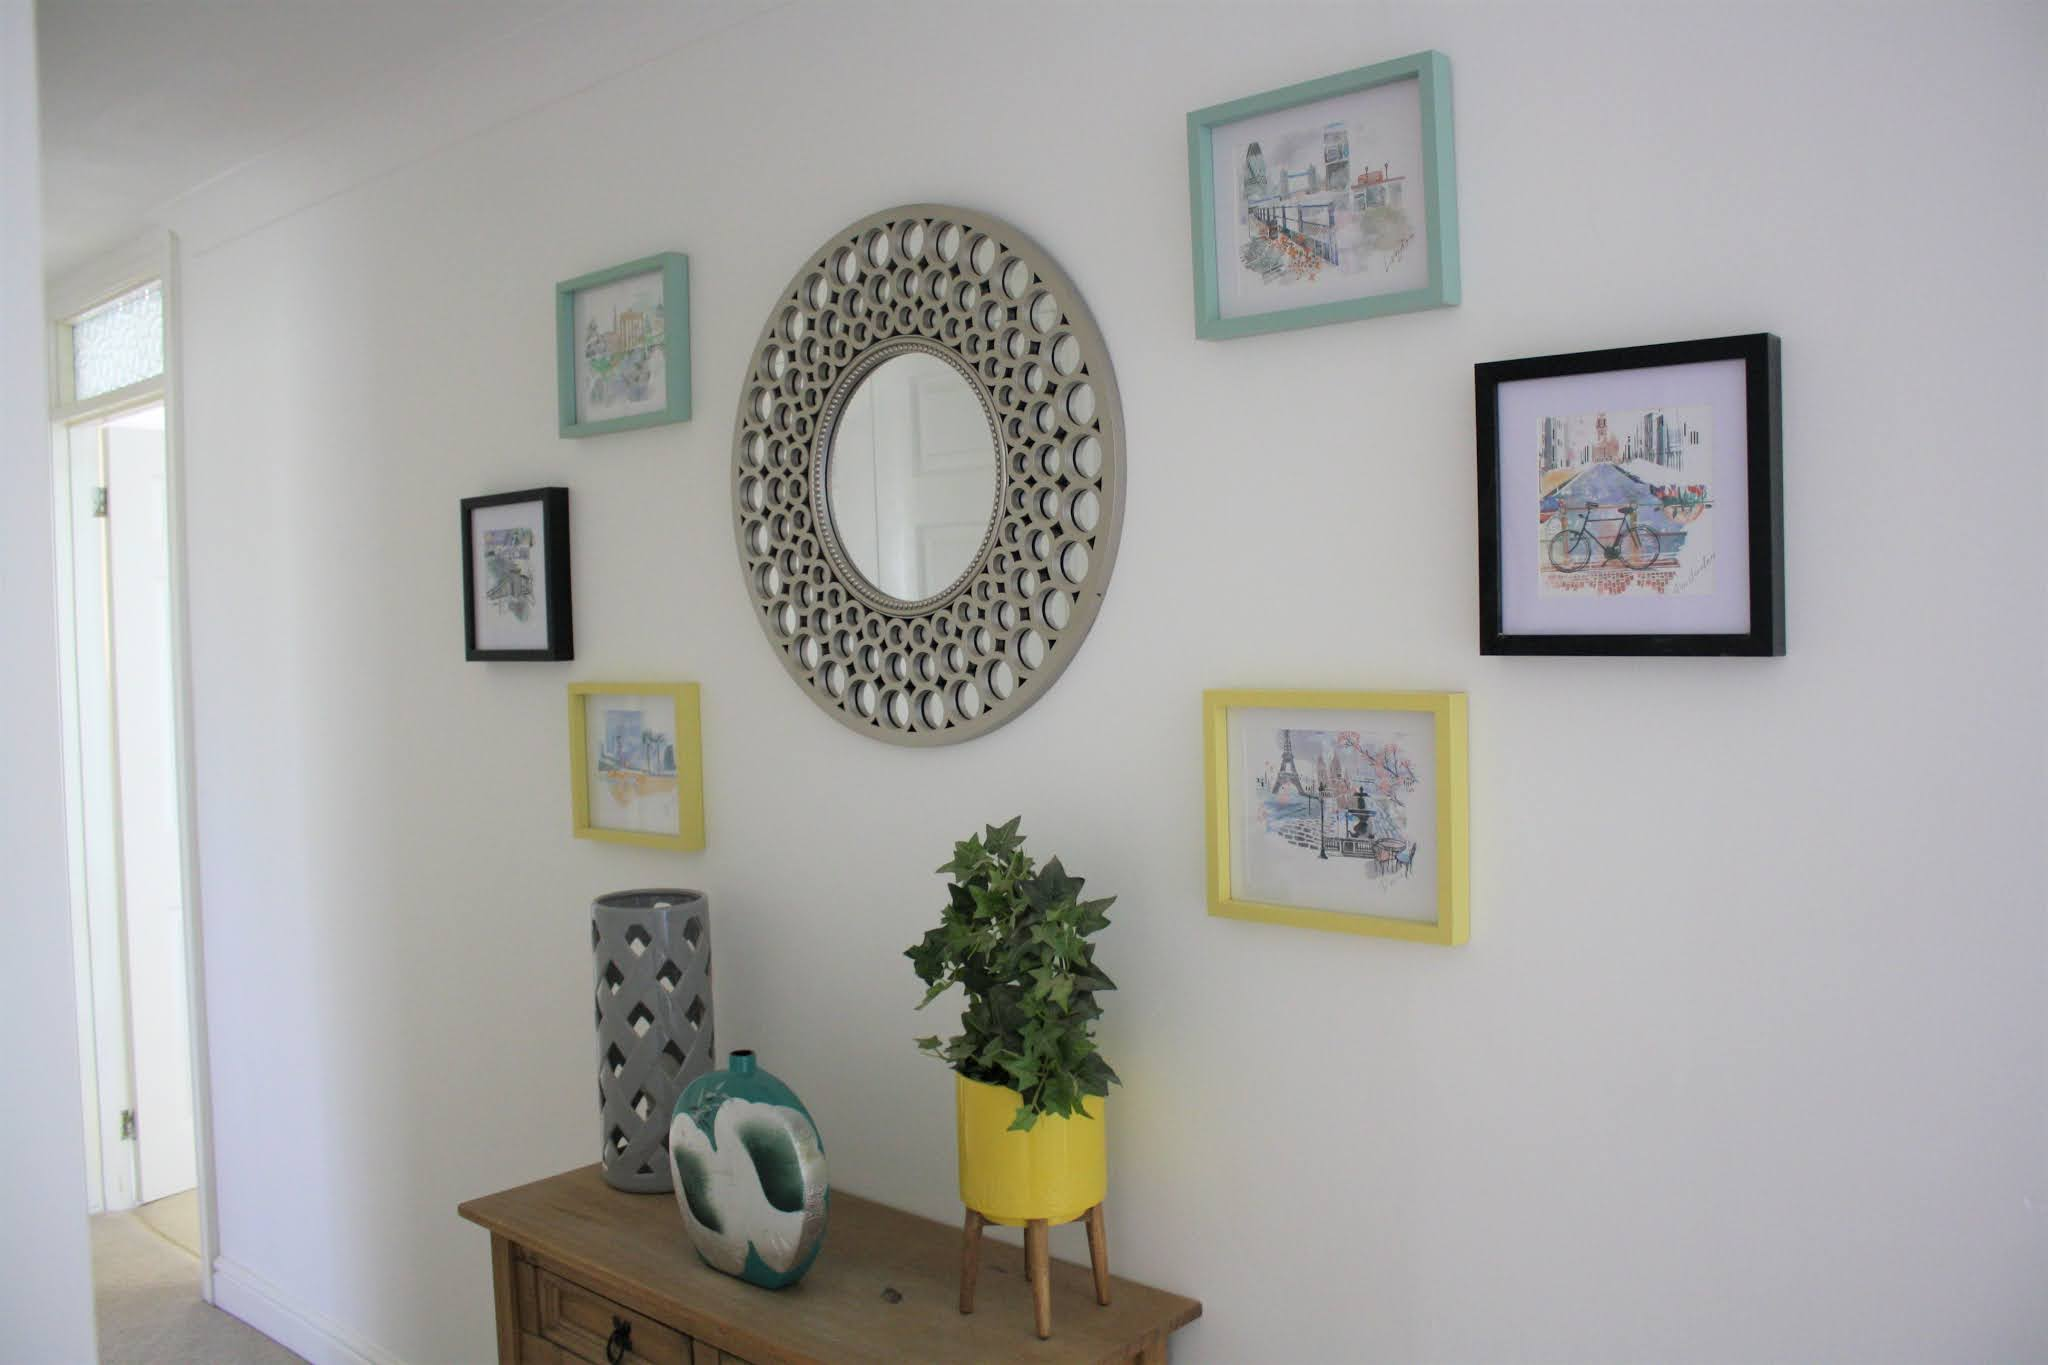 coloured prints in coloured frames by mirror, console table and hallway. coloured vases and plants at side